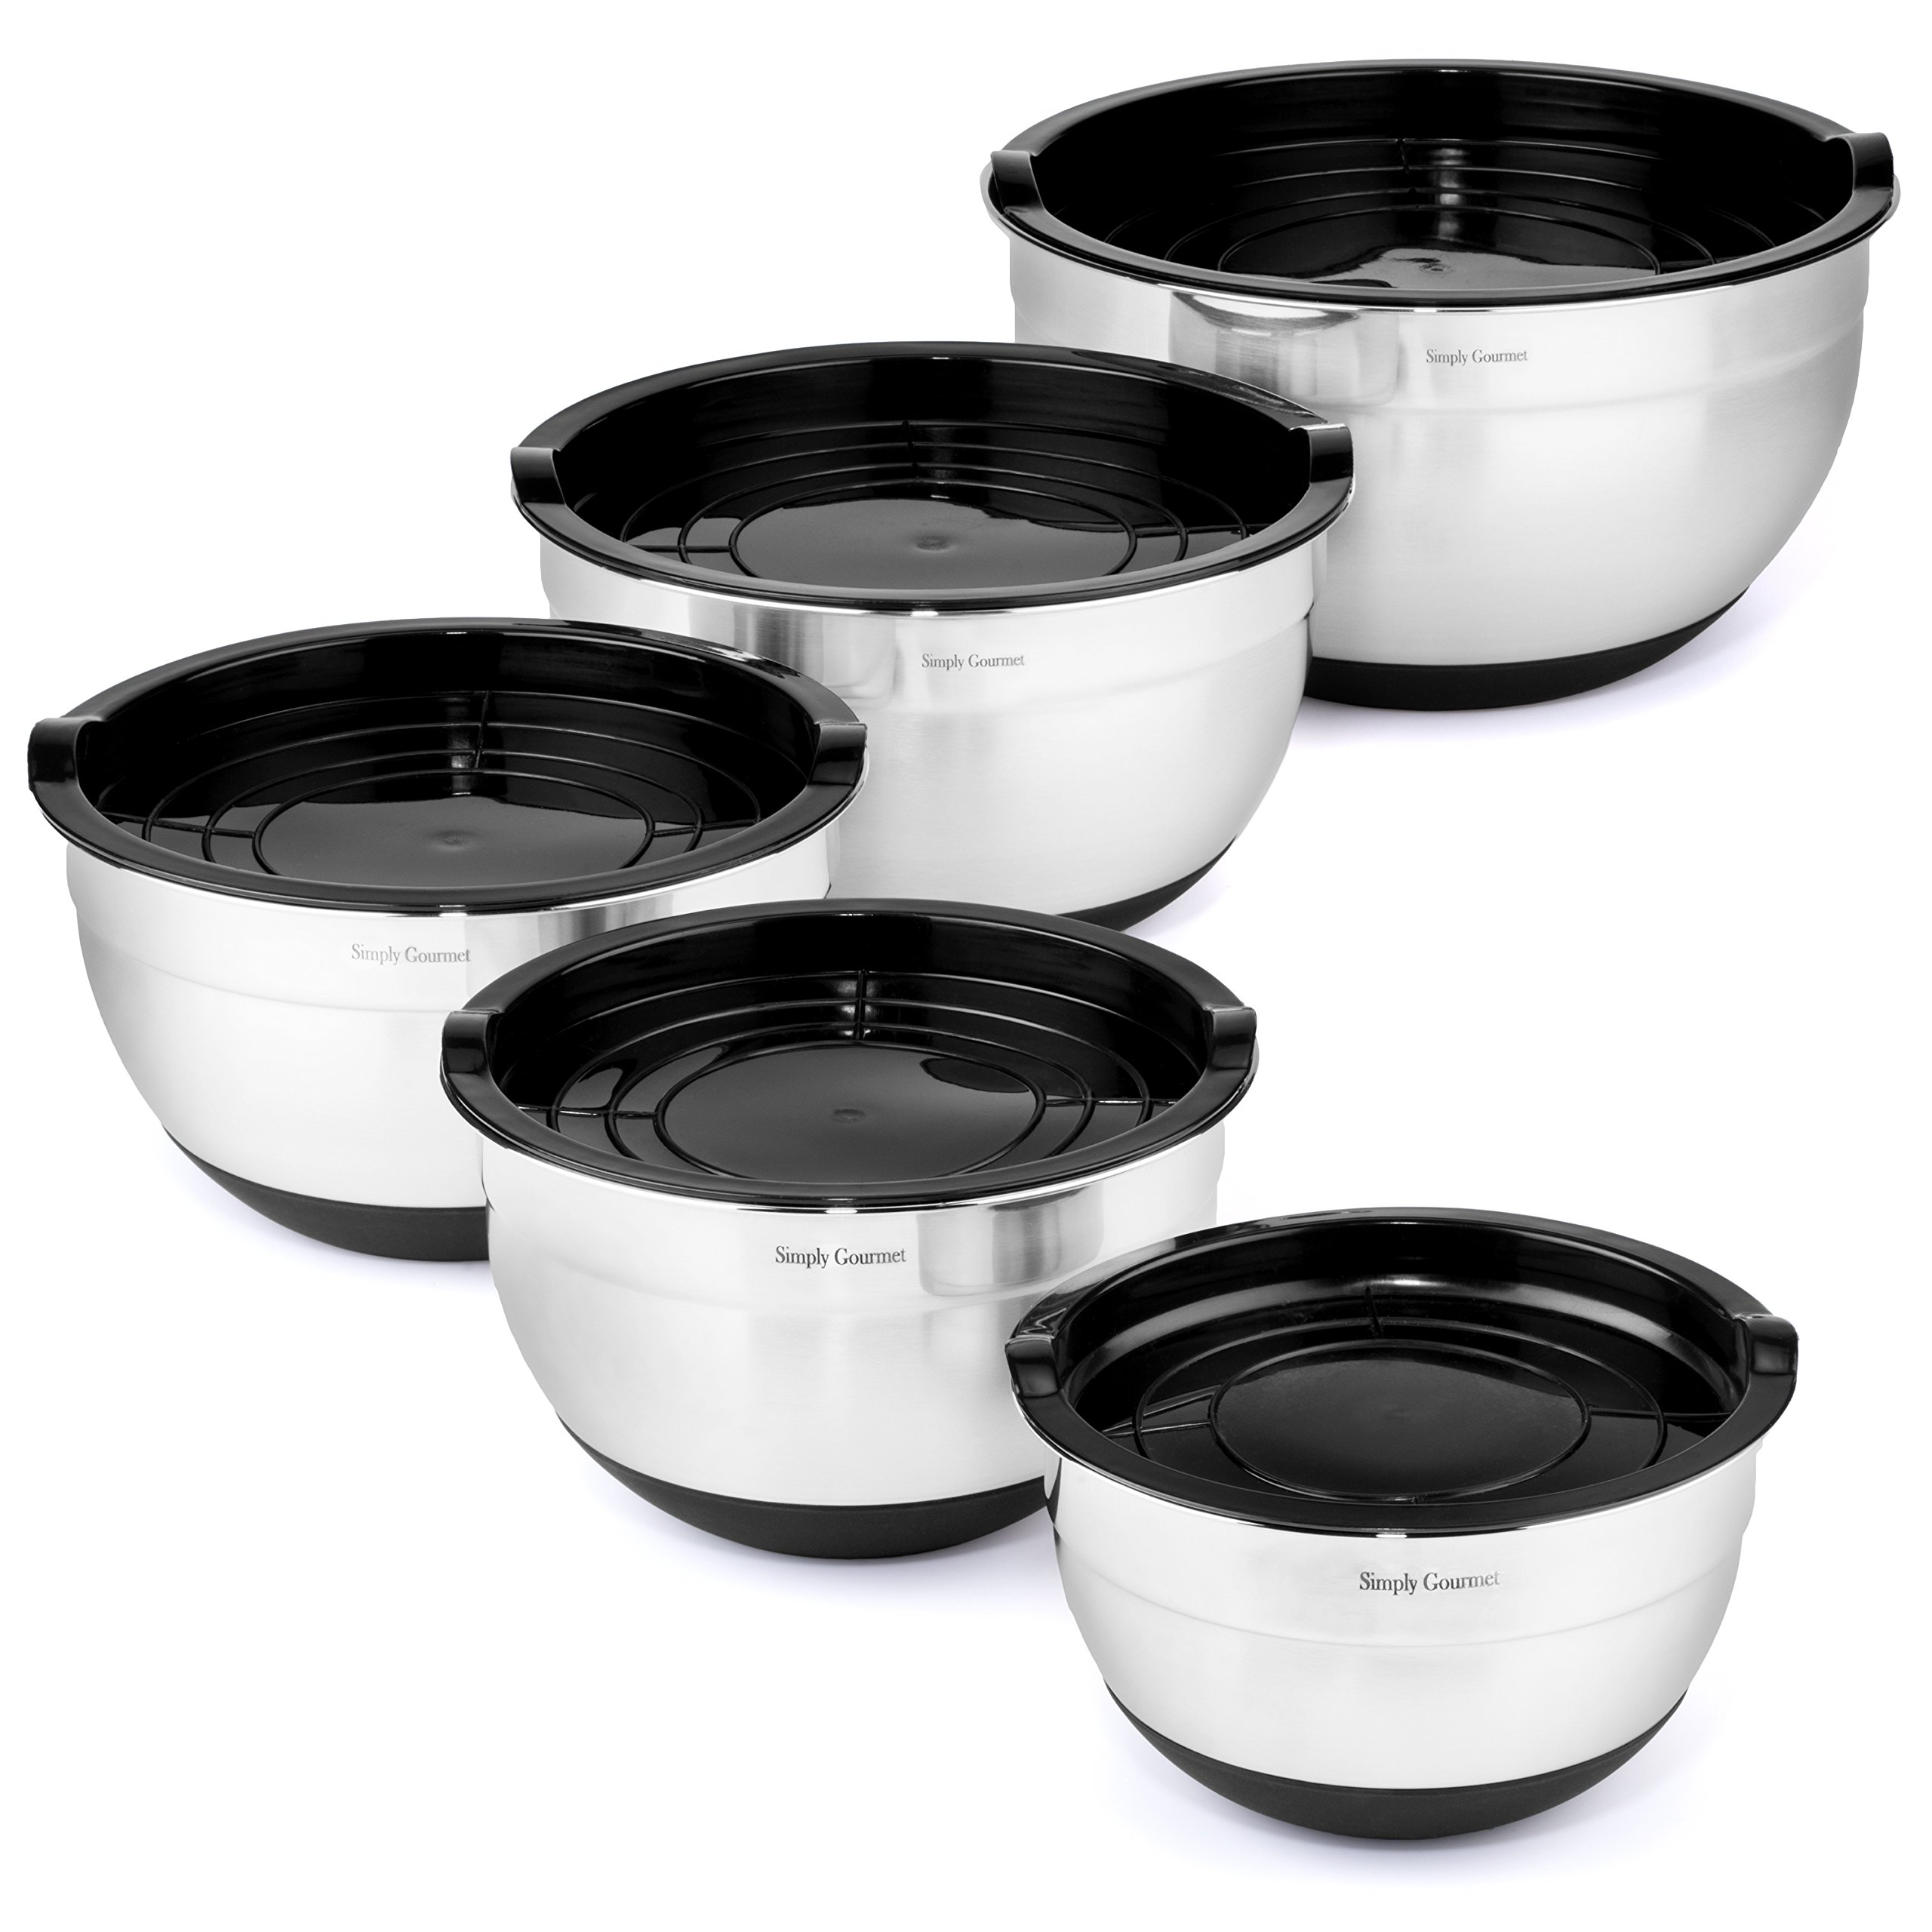 Premium Mixing Bowls with Lids - by Simply Gourmet. Stainless Steel Mixing Bowl Set Contains 5 Bowls with Airtight Lids, Non-Slip Bottoms, and a Flat Base for Stable Mixing. Bowls Nest for Storage … by Simply Gourmet (Image #2)